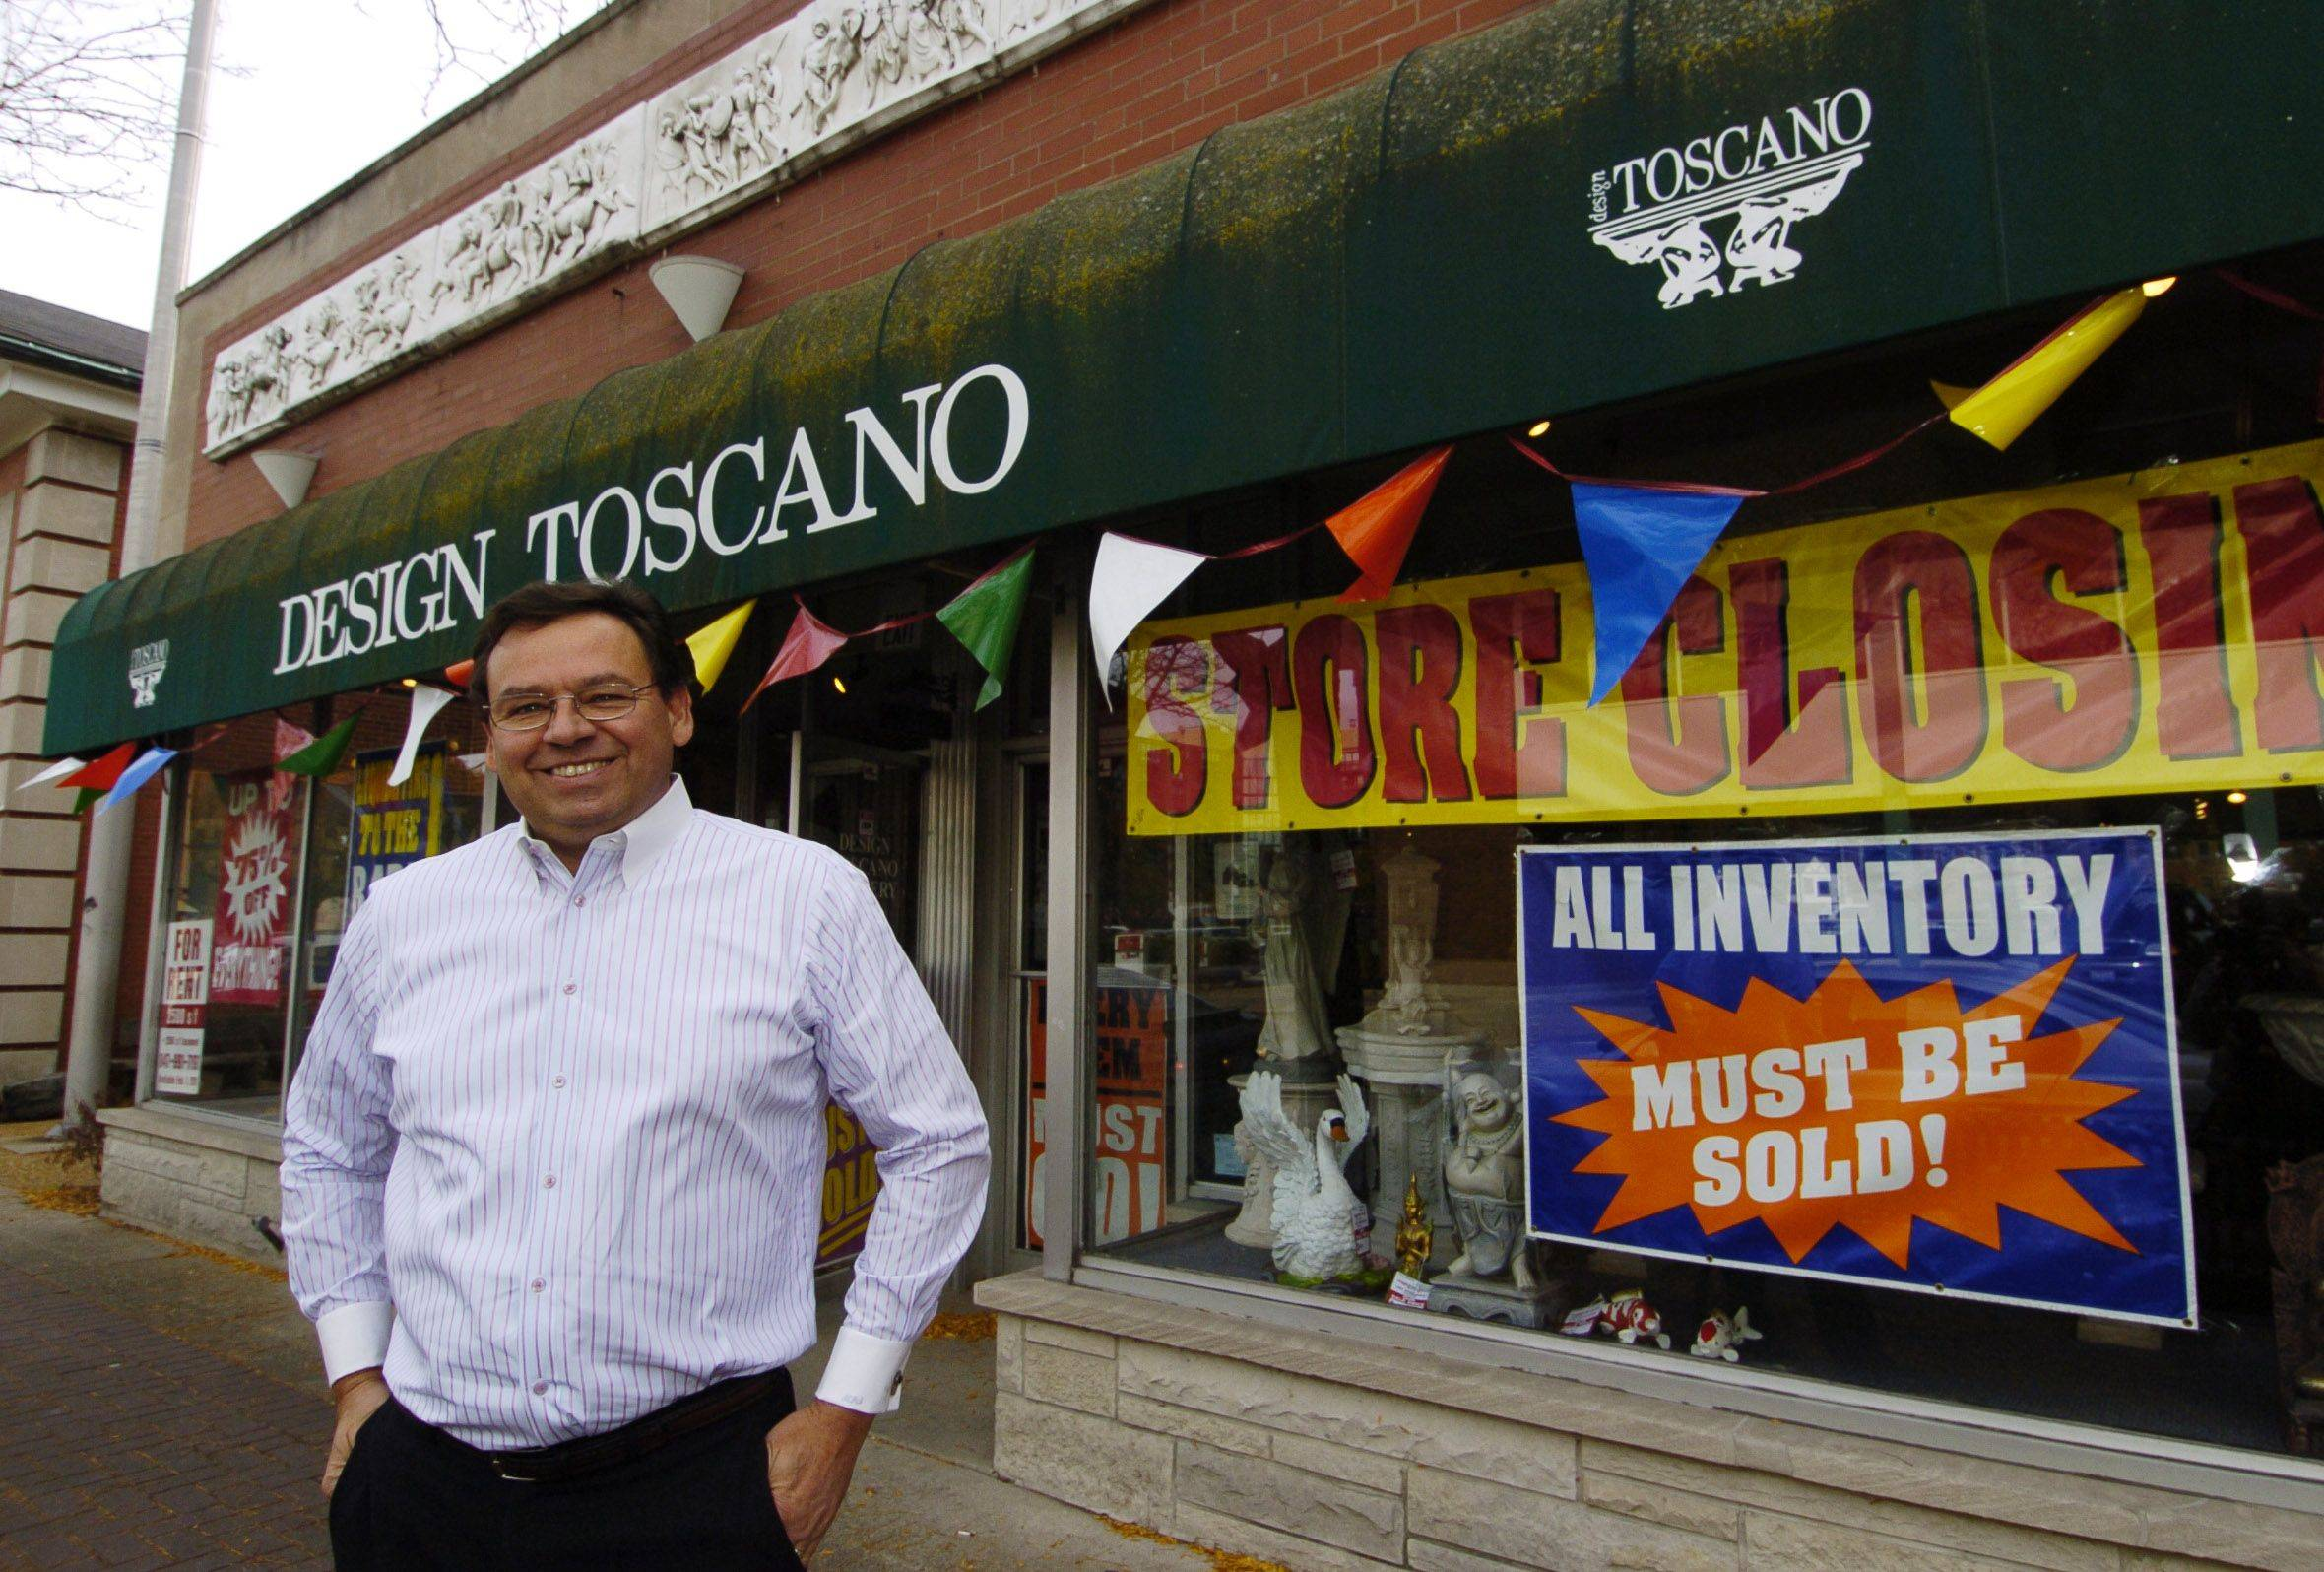 Mike Stopka, owner of Design TOscano, says there is plenty of foot traffic in downtown Arlington Heights but not enough buyers.